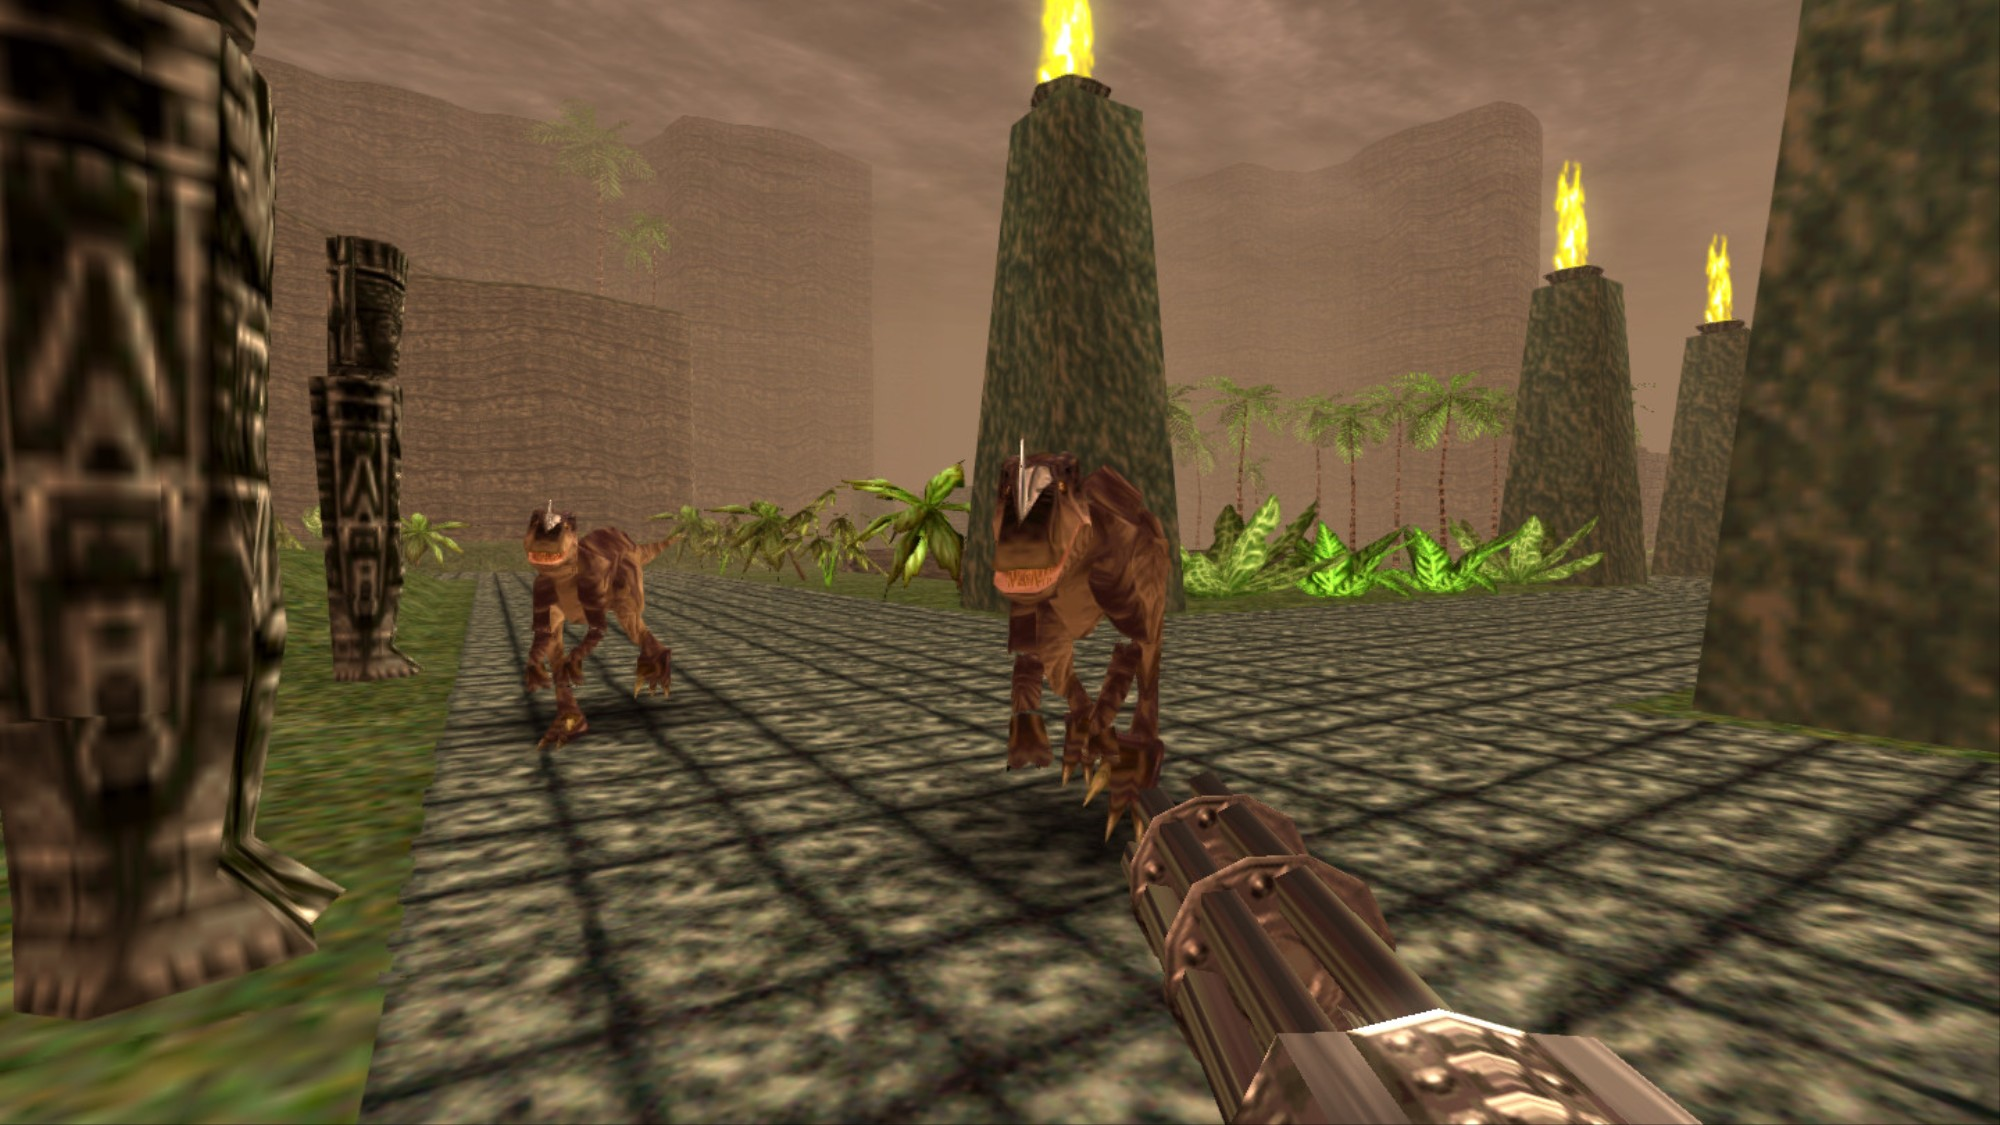 Turok' Source Code Will Be Sold on eBay Soon, Thanks to